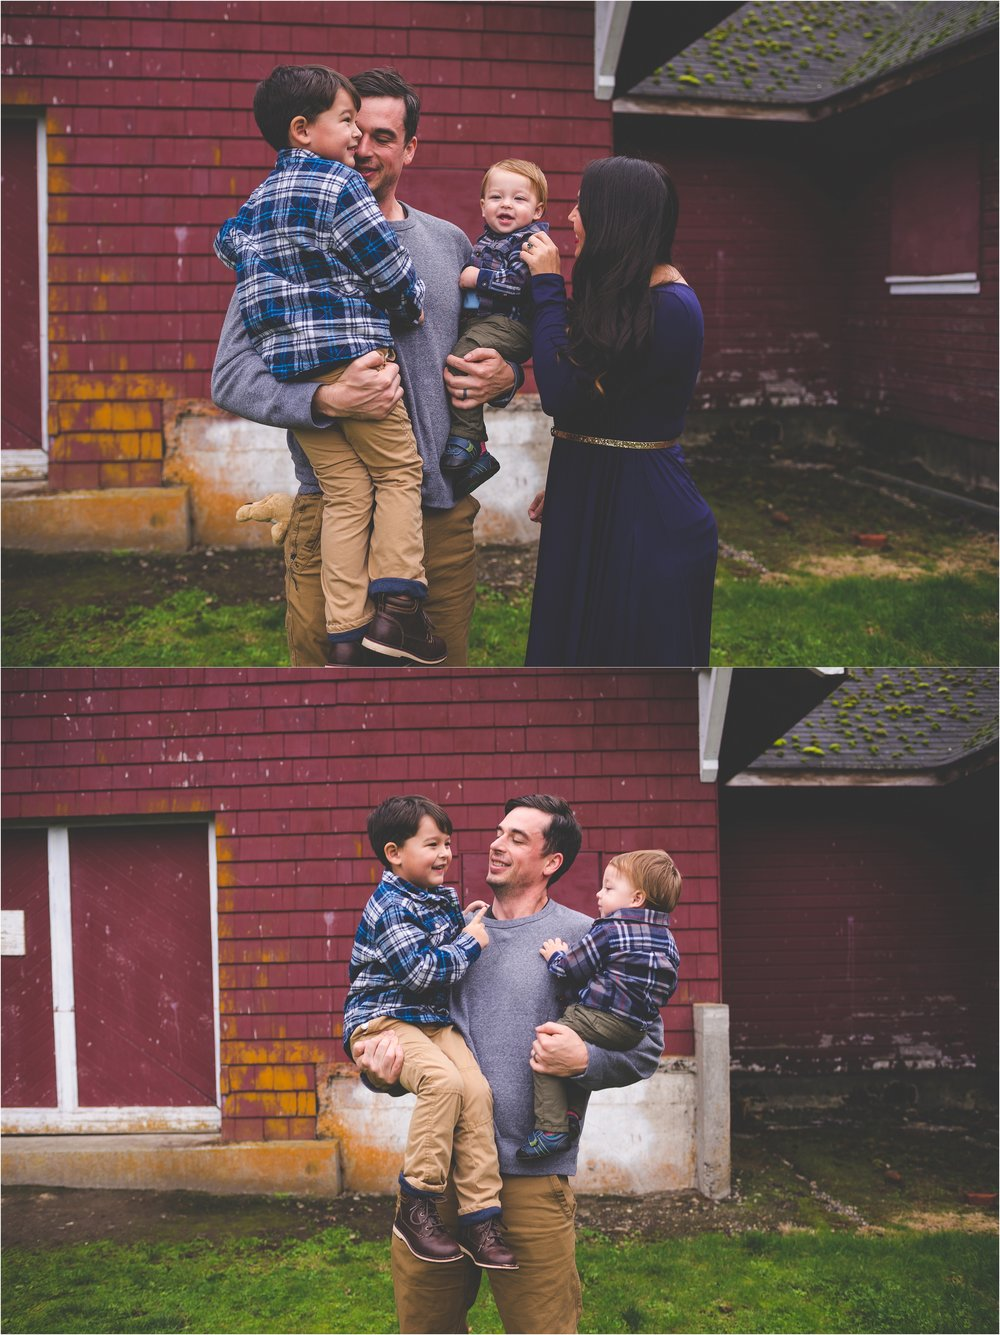 fort-steilacoom-park-family-session-jannicka-mayte-pacific-northwest-lifestyle-photographer_0006.jpg